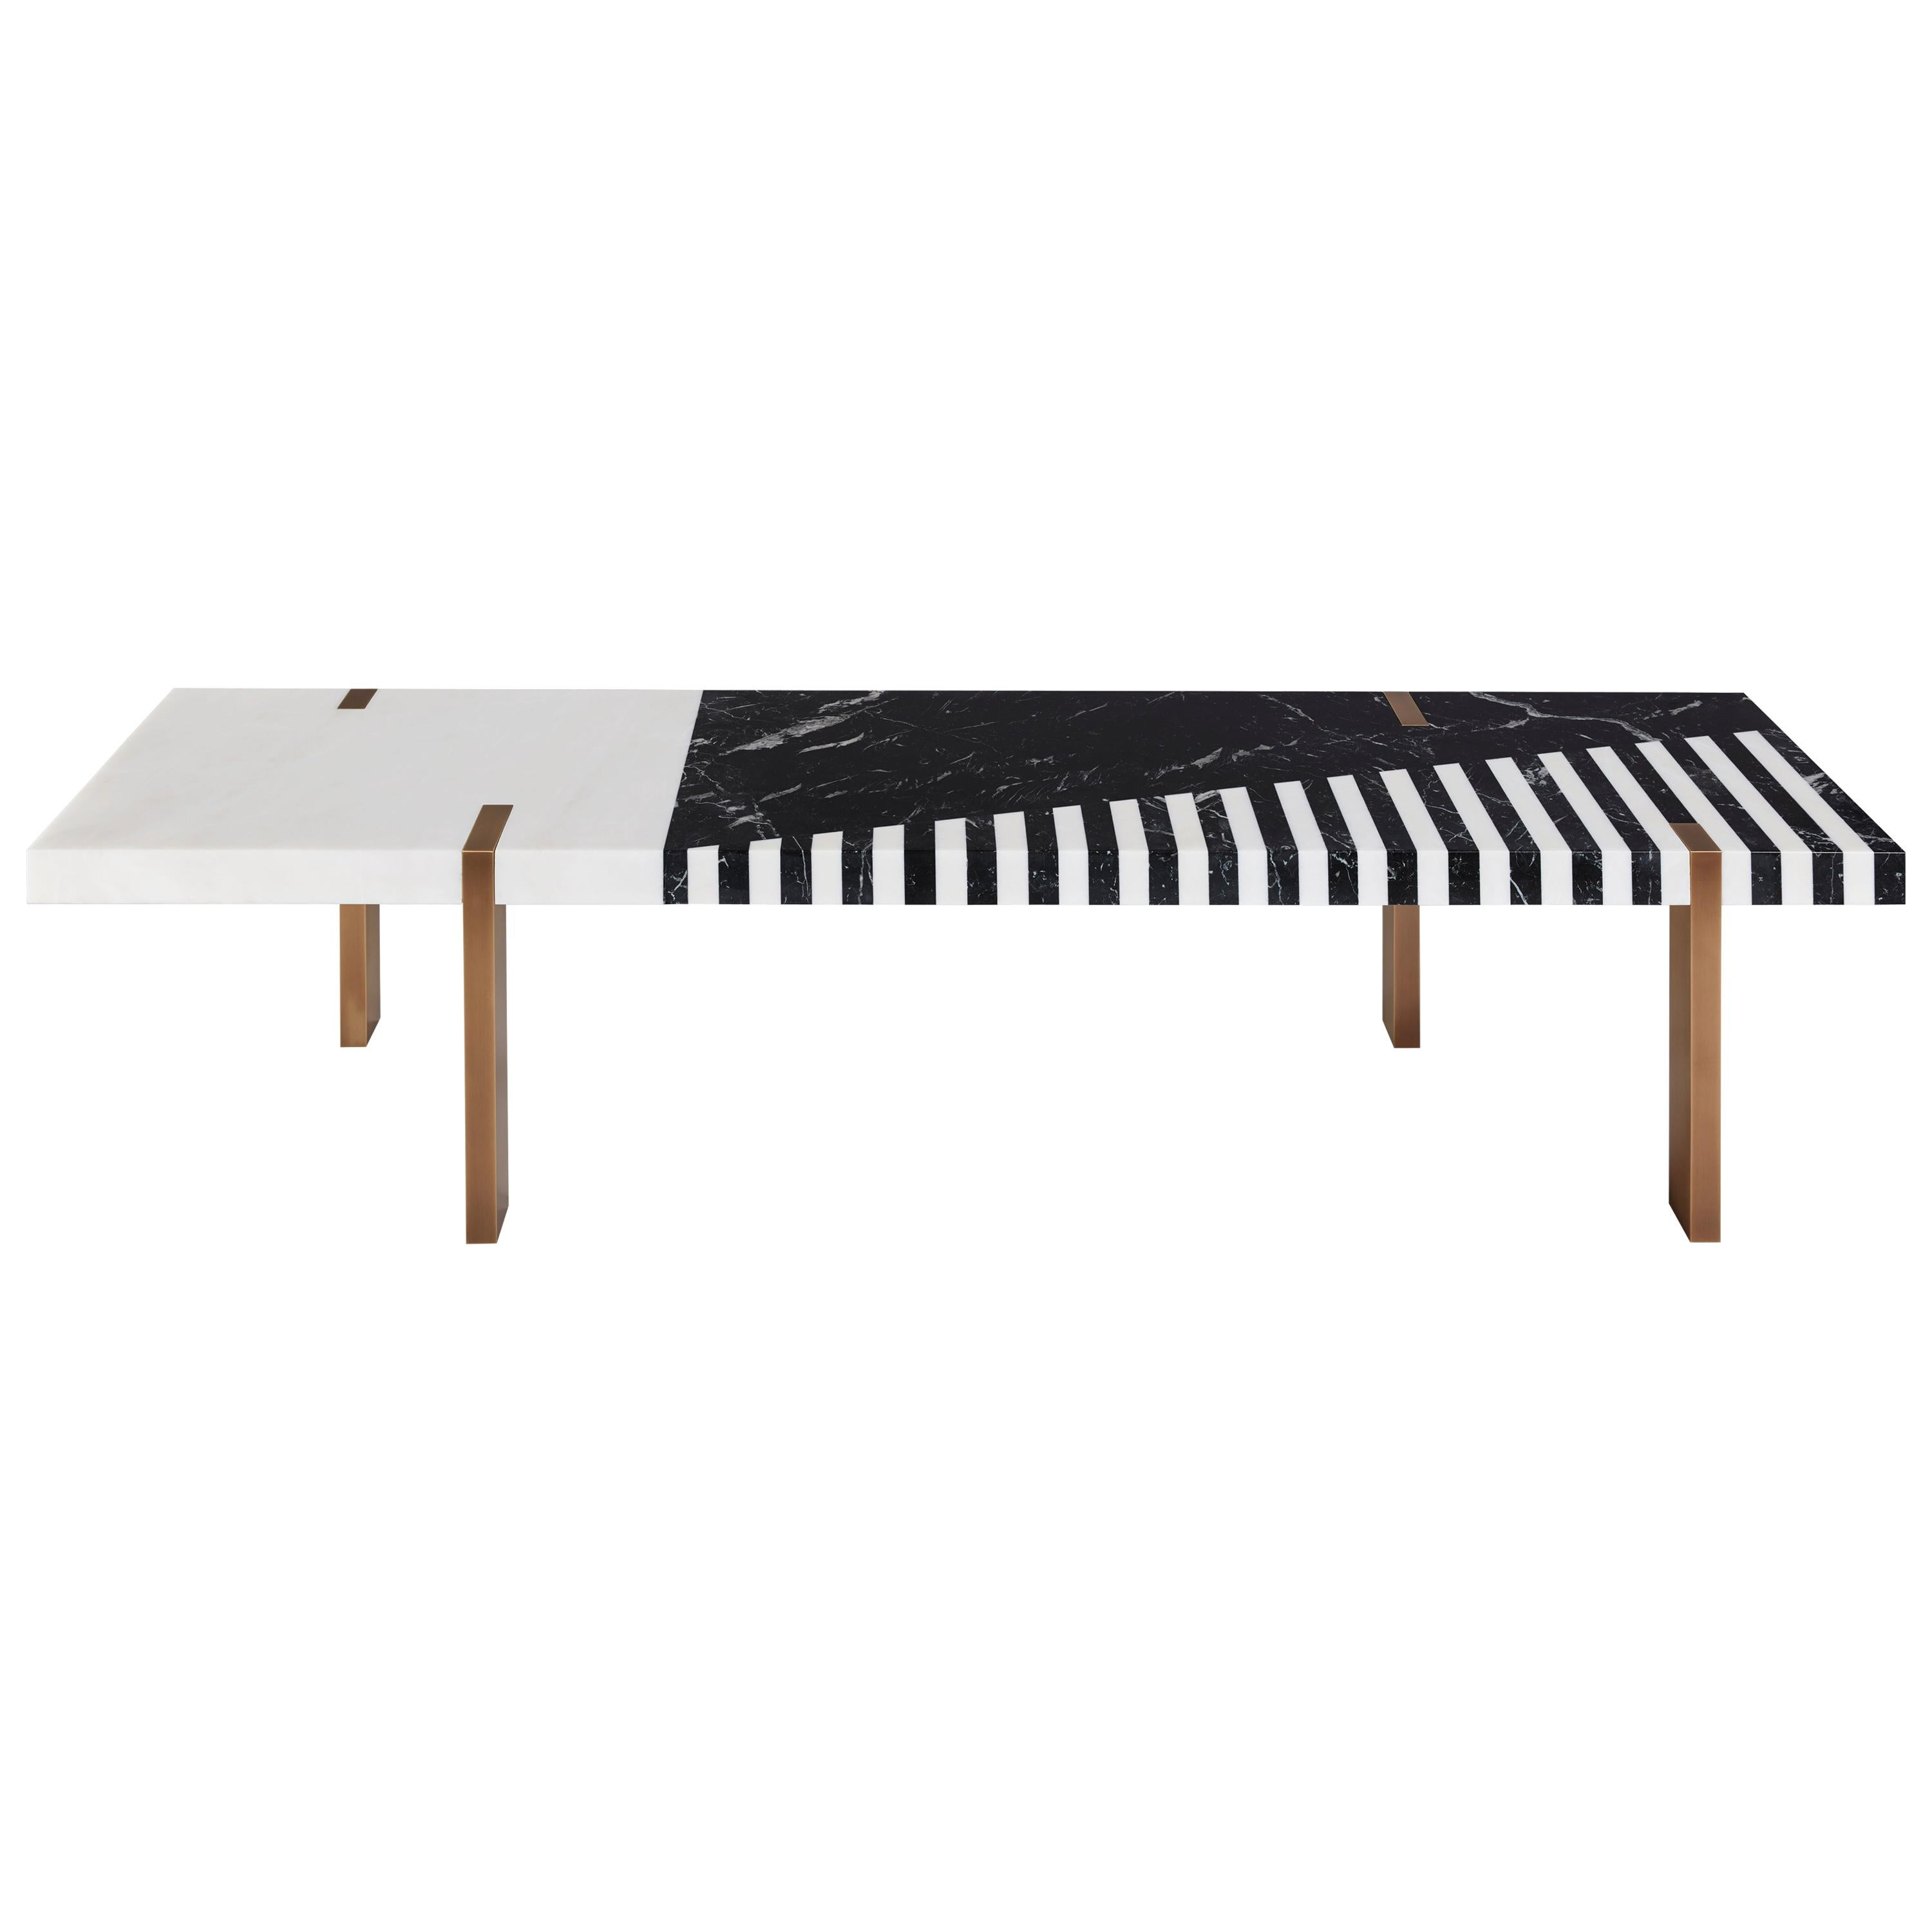 Ellipse Bench/Coffee Table by Isabelle Stanislas